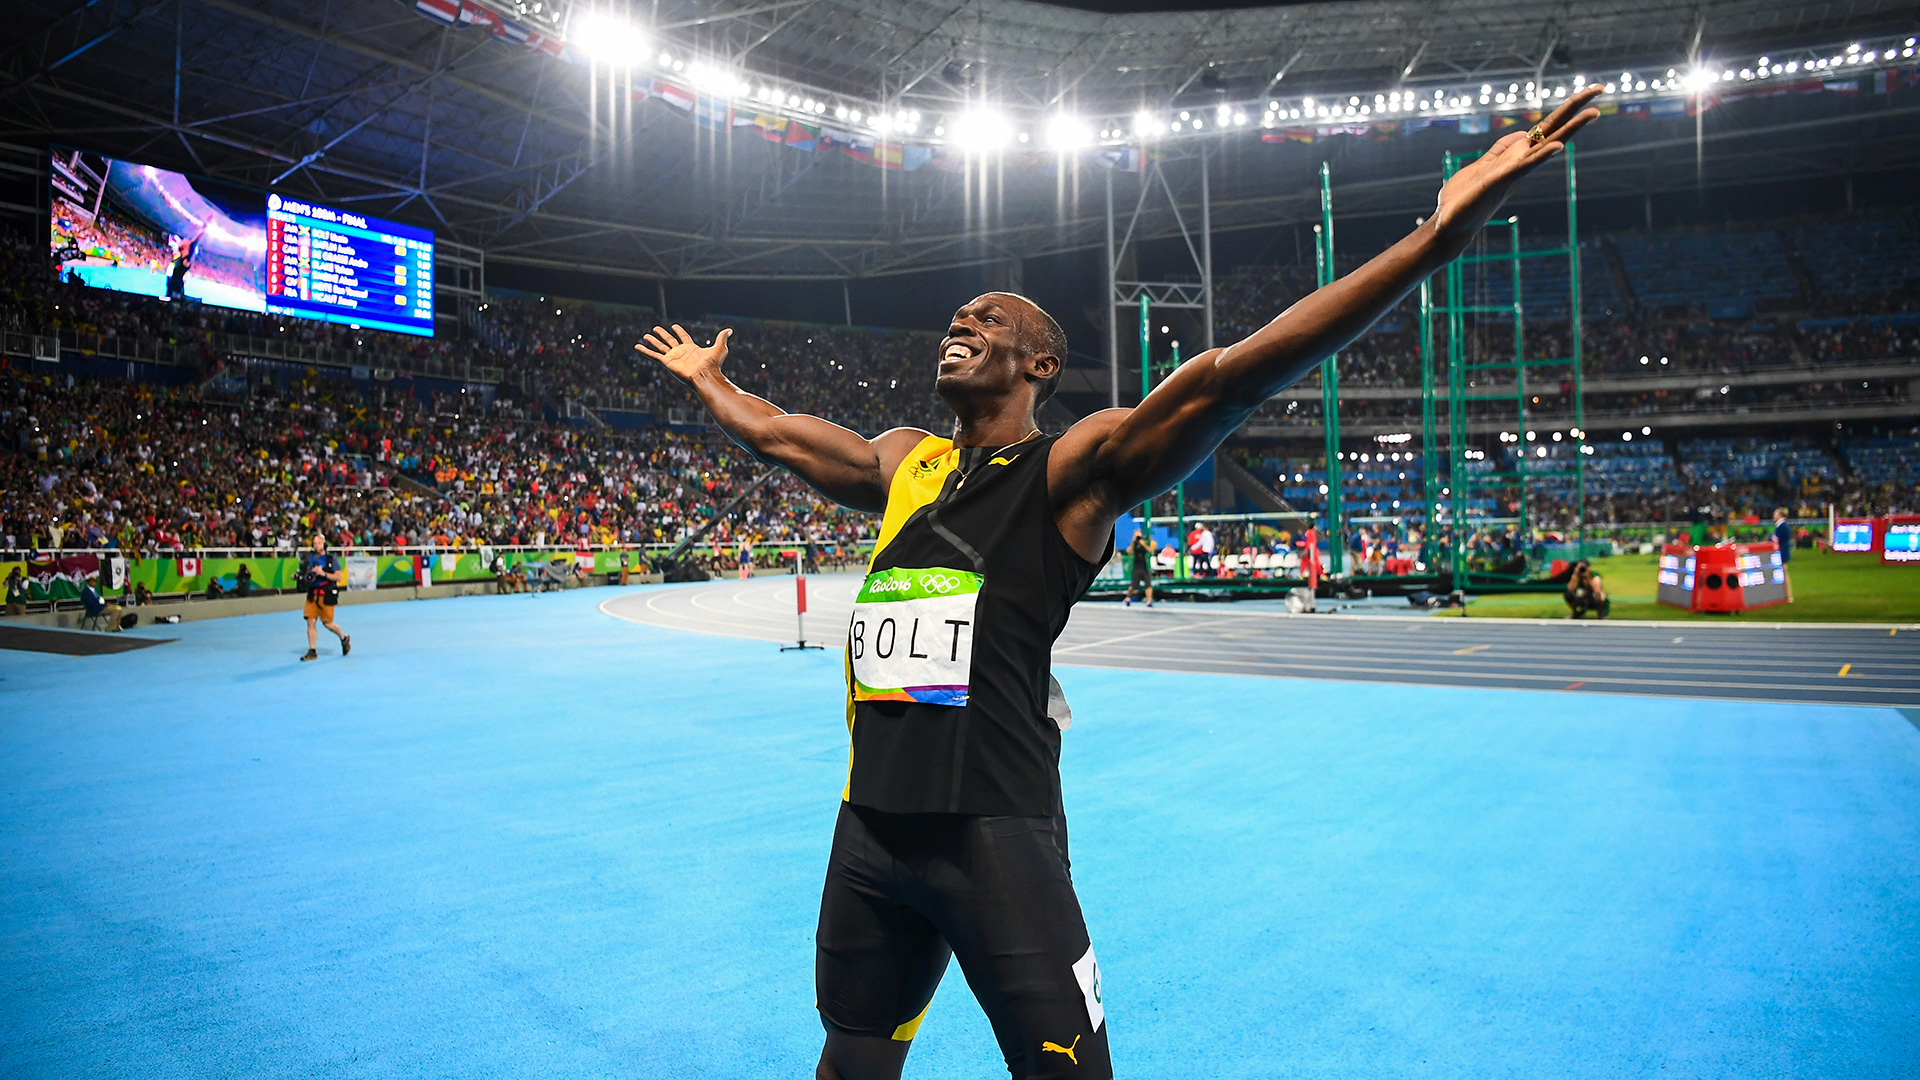 Usain Bolt After Winning Gold In The 100 Meters Getty